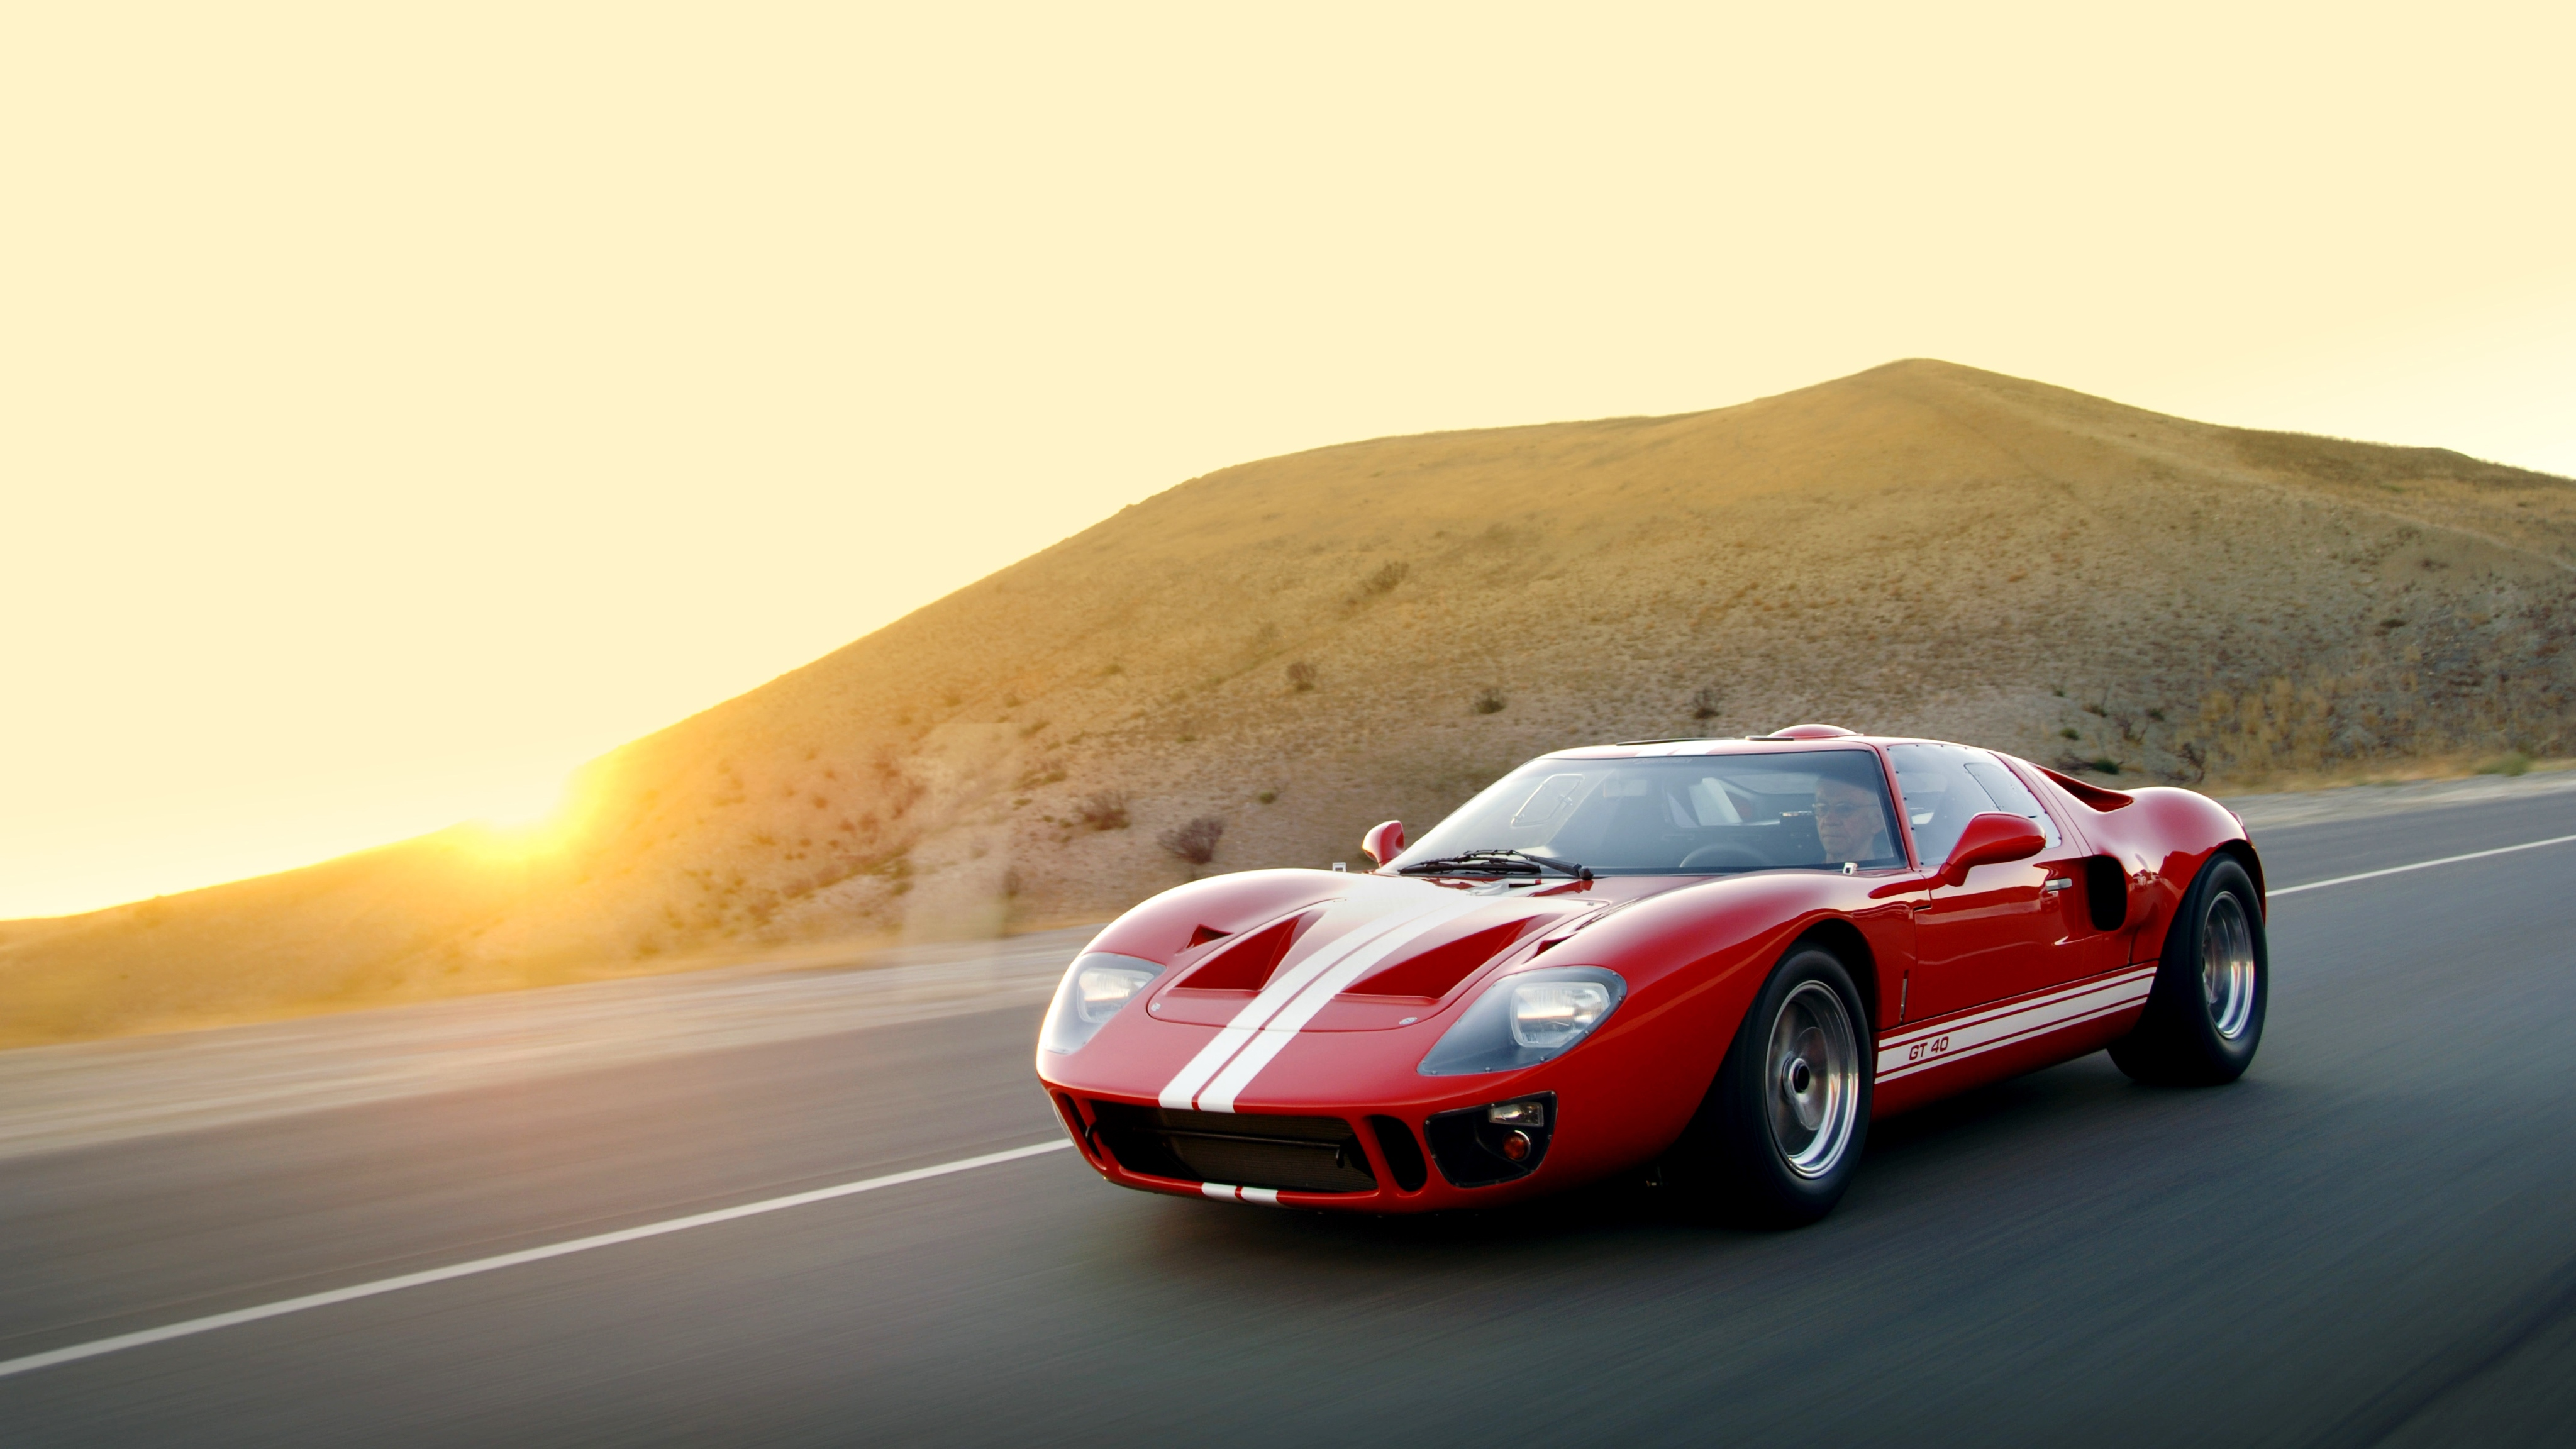 51111 download wallpaper Cars, Ford, Gt40, Mki, Superformance, 2007, Sports Car, Sports screensavers and pictures for free